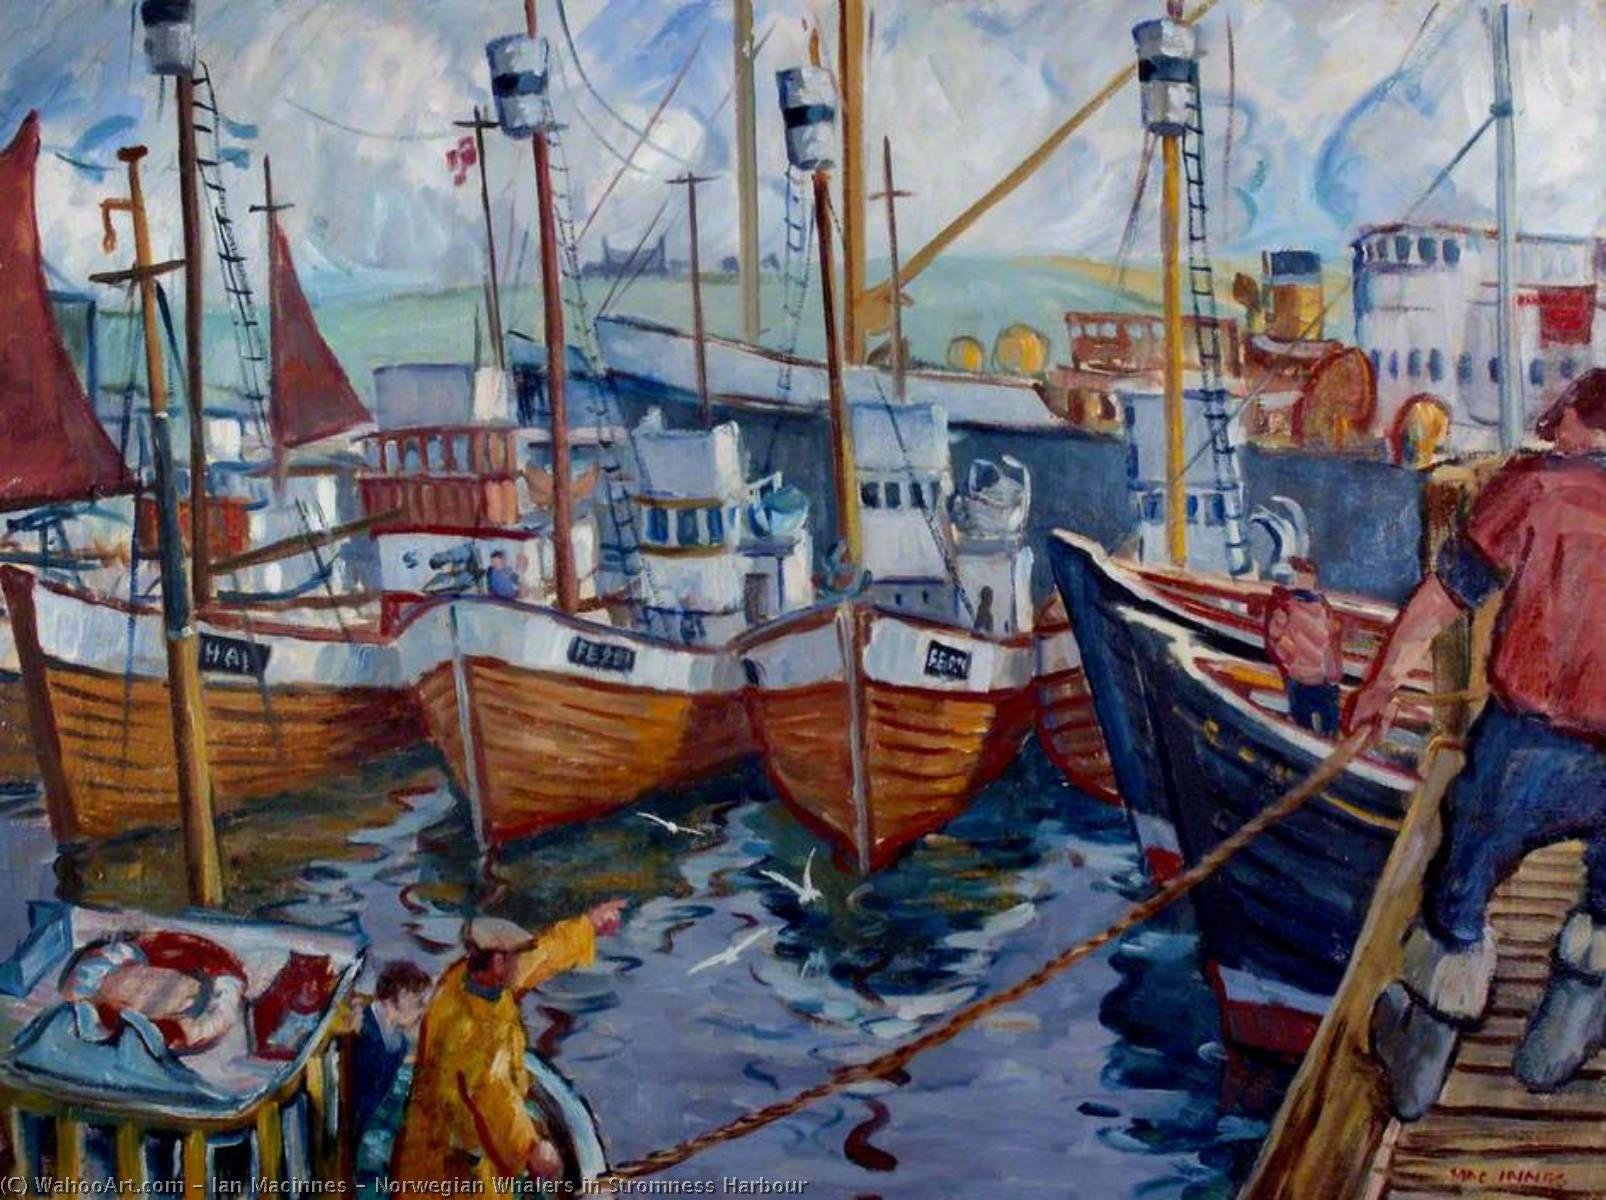 Wikioo.org - The Encyclopedia of Fine Arts - Painting, Artwork by Ian Macinnes - Norwegian Whalers in Stromness Harbour